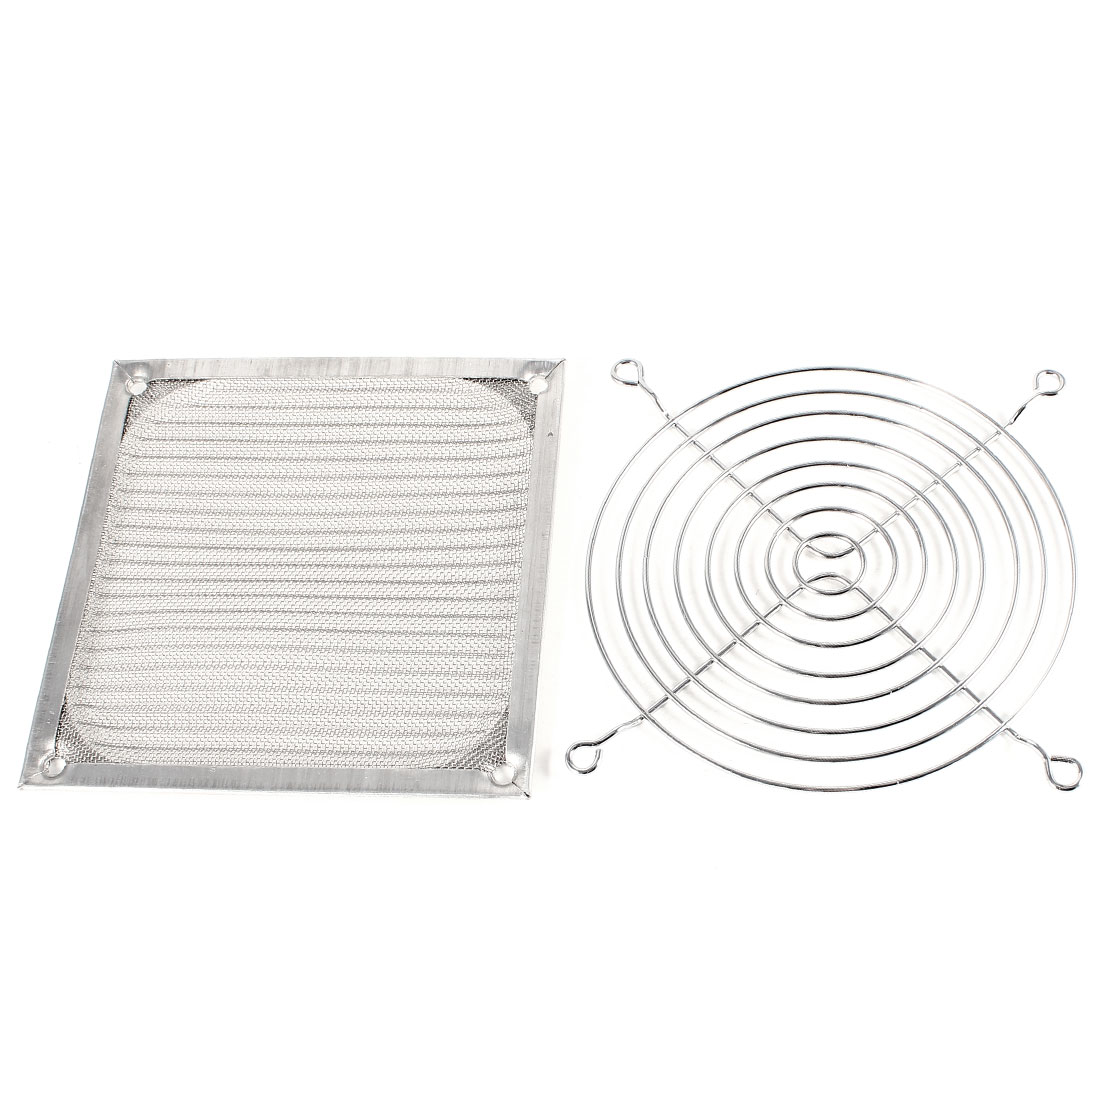 120mm PC Computer Case Fan Grill Guard w Dust Filter Silver Tone